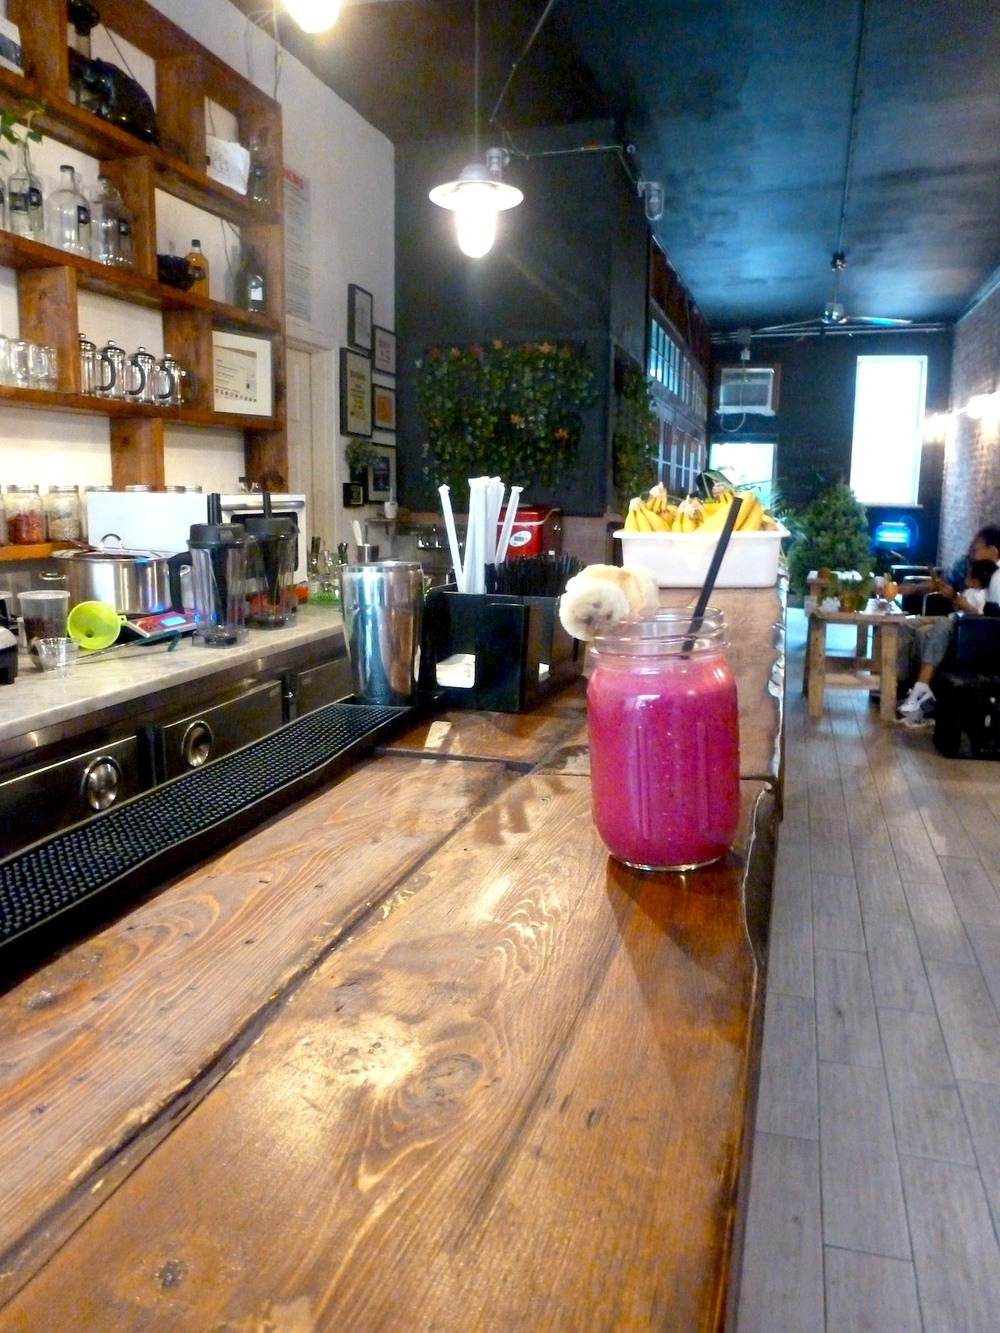 Berry Crunch smoothie awaits you on the bar at House of Juice